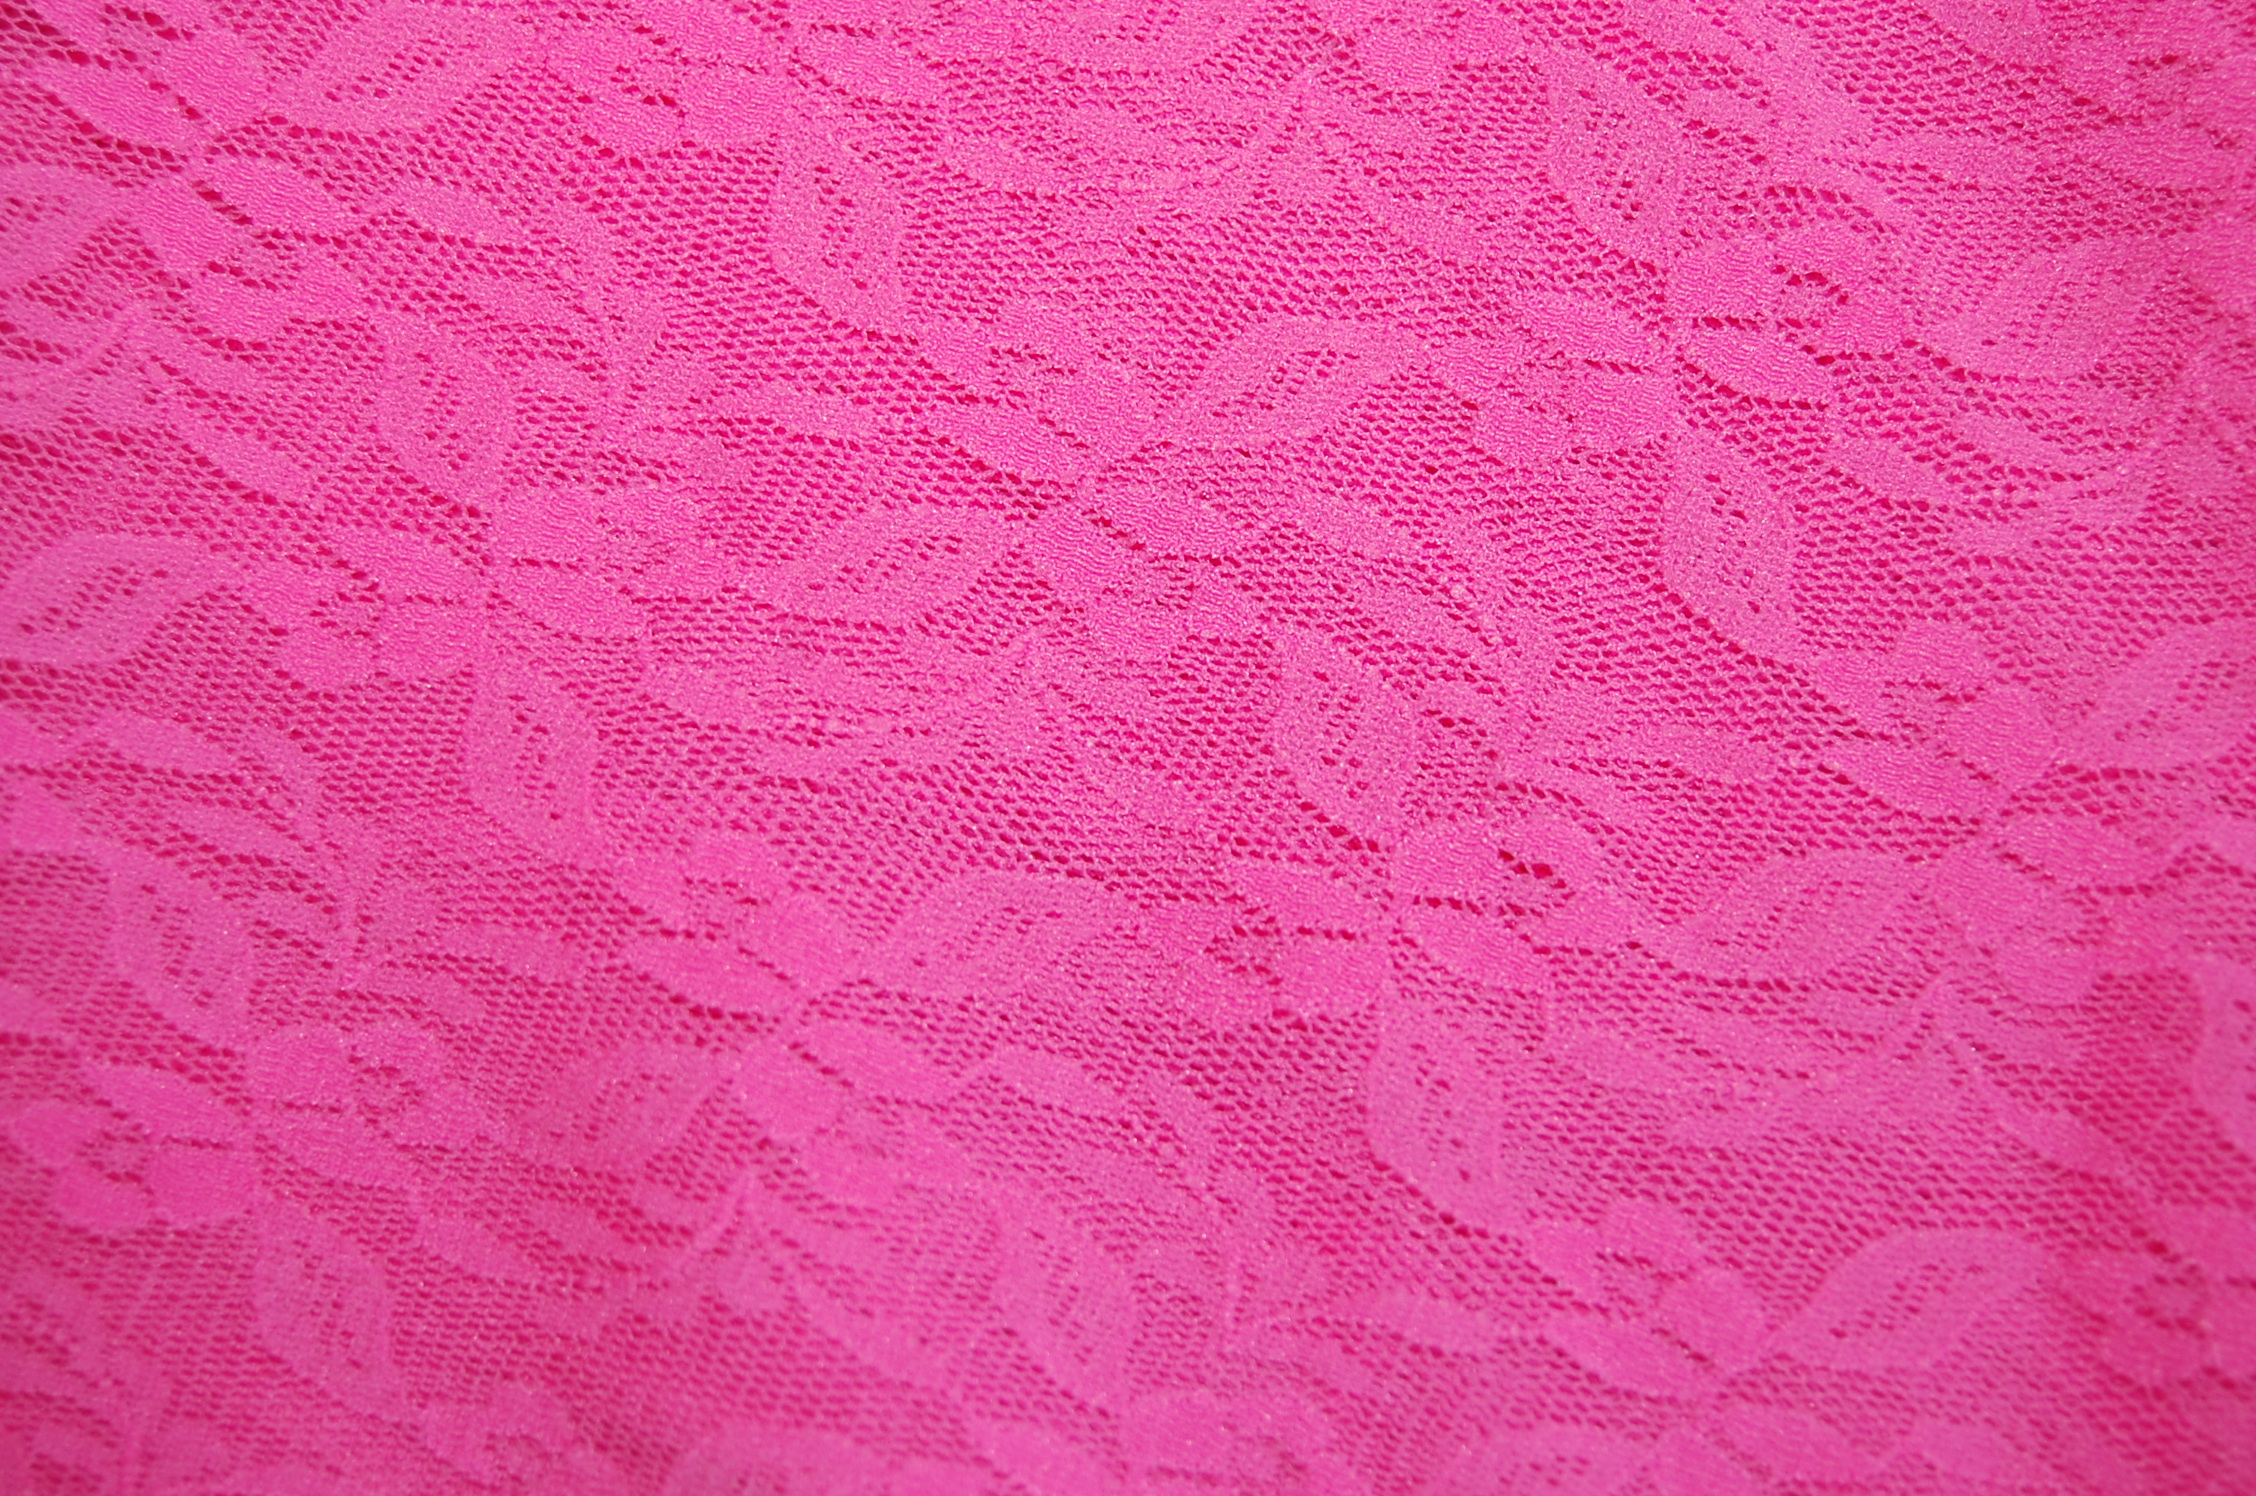 lace pearls pink wallpaper - photo #28